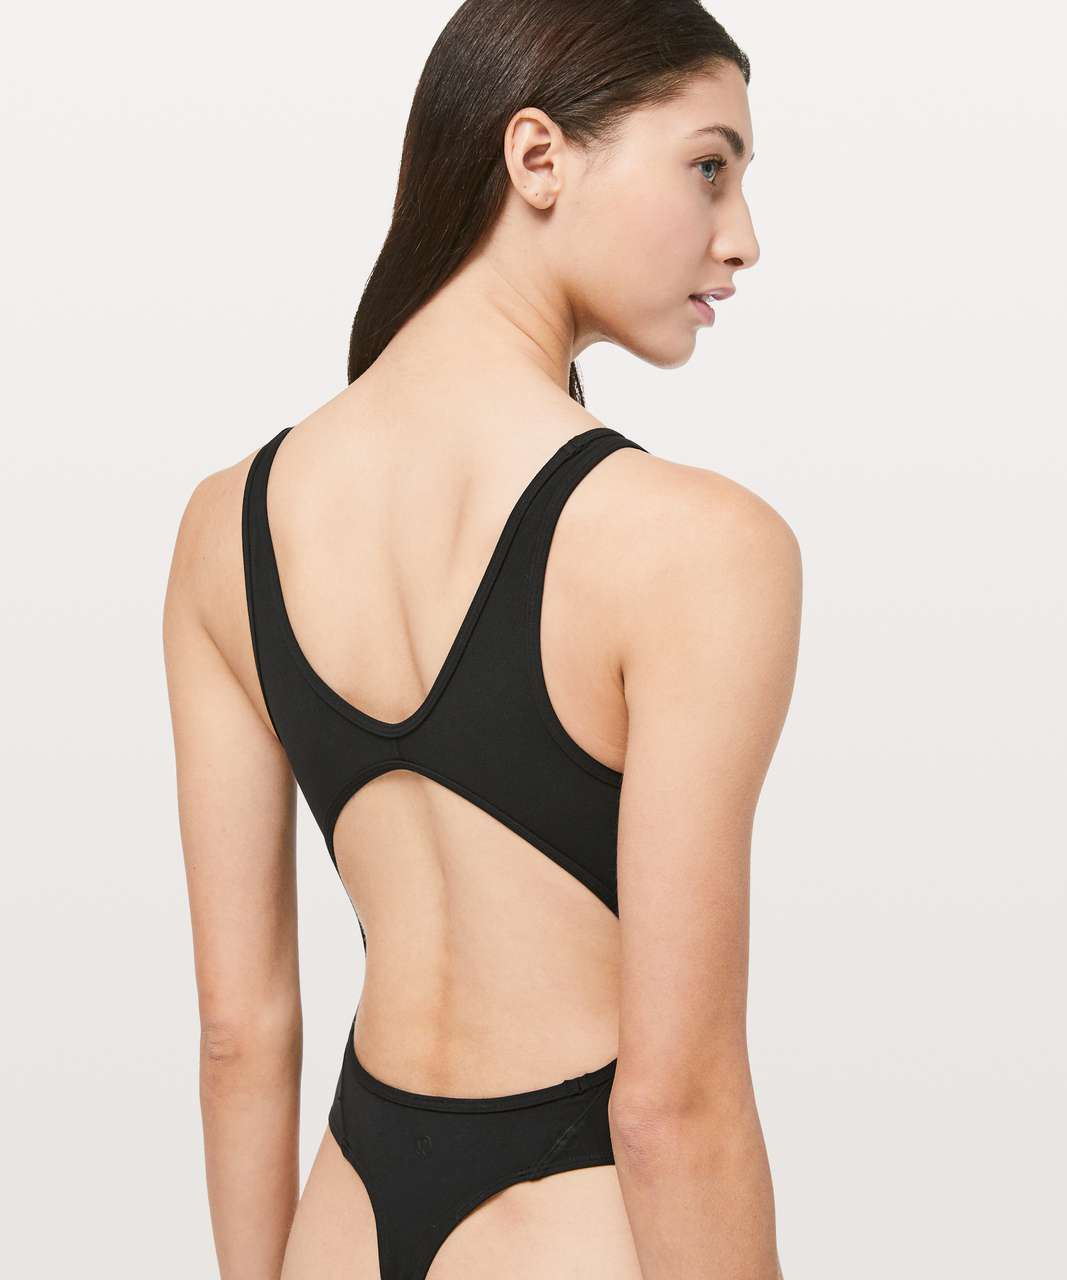 Lululemon Real Feel Bodysuit - Black